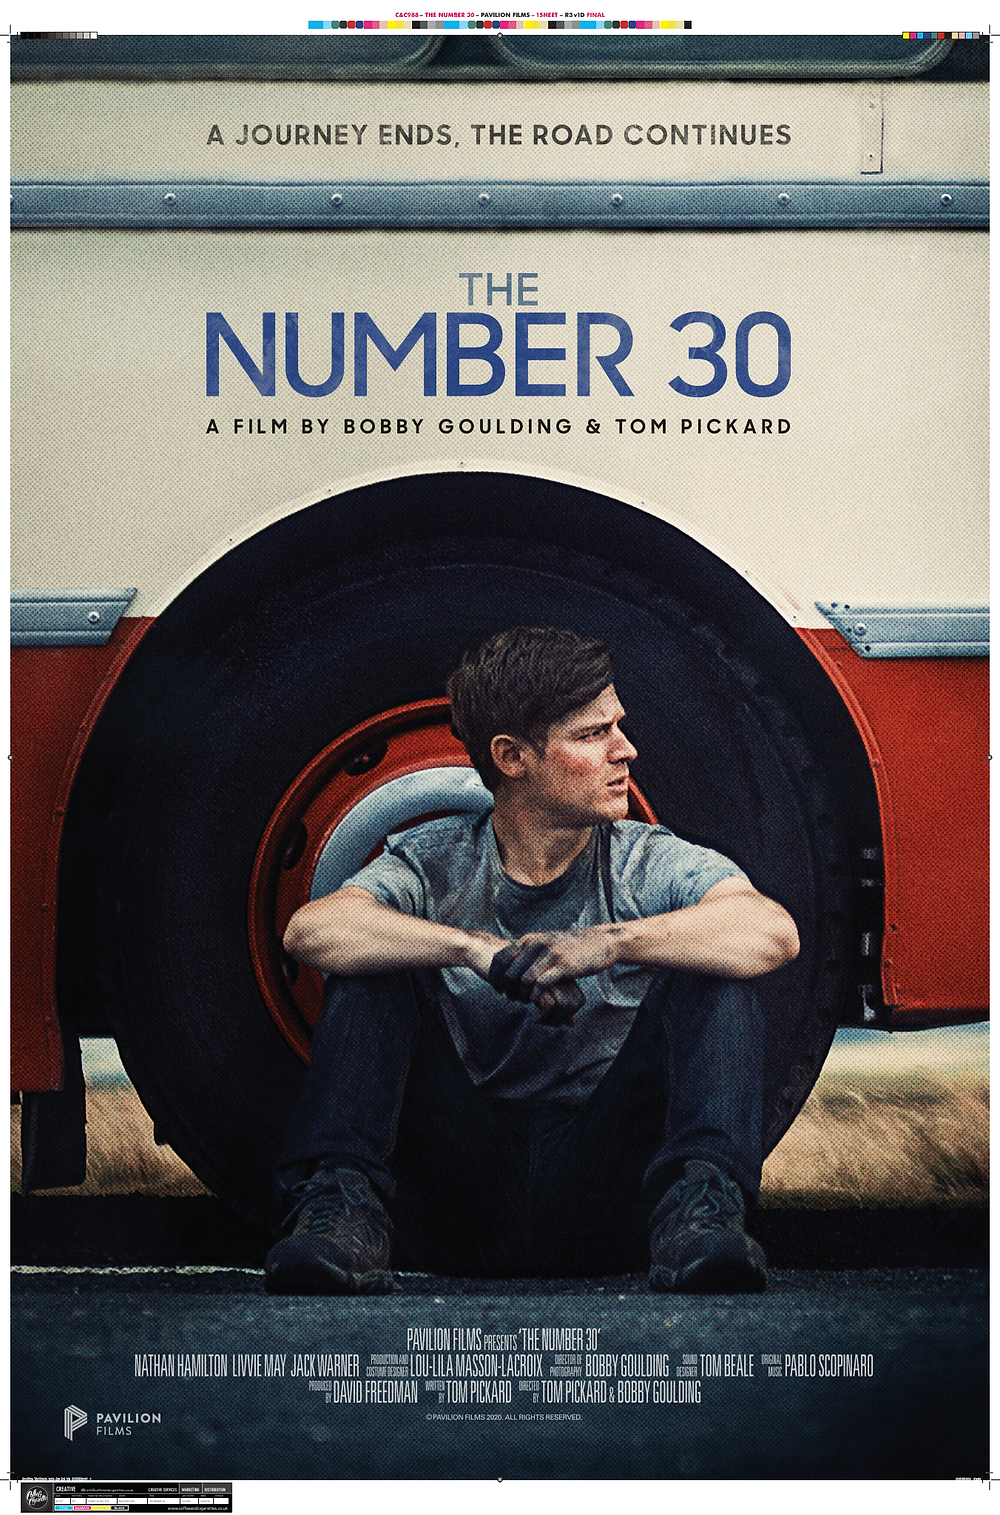 Poster for The Number 30 showing protagonist.